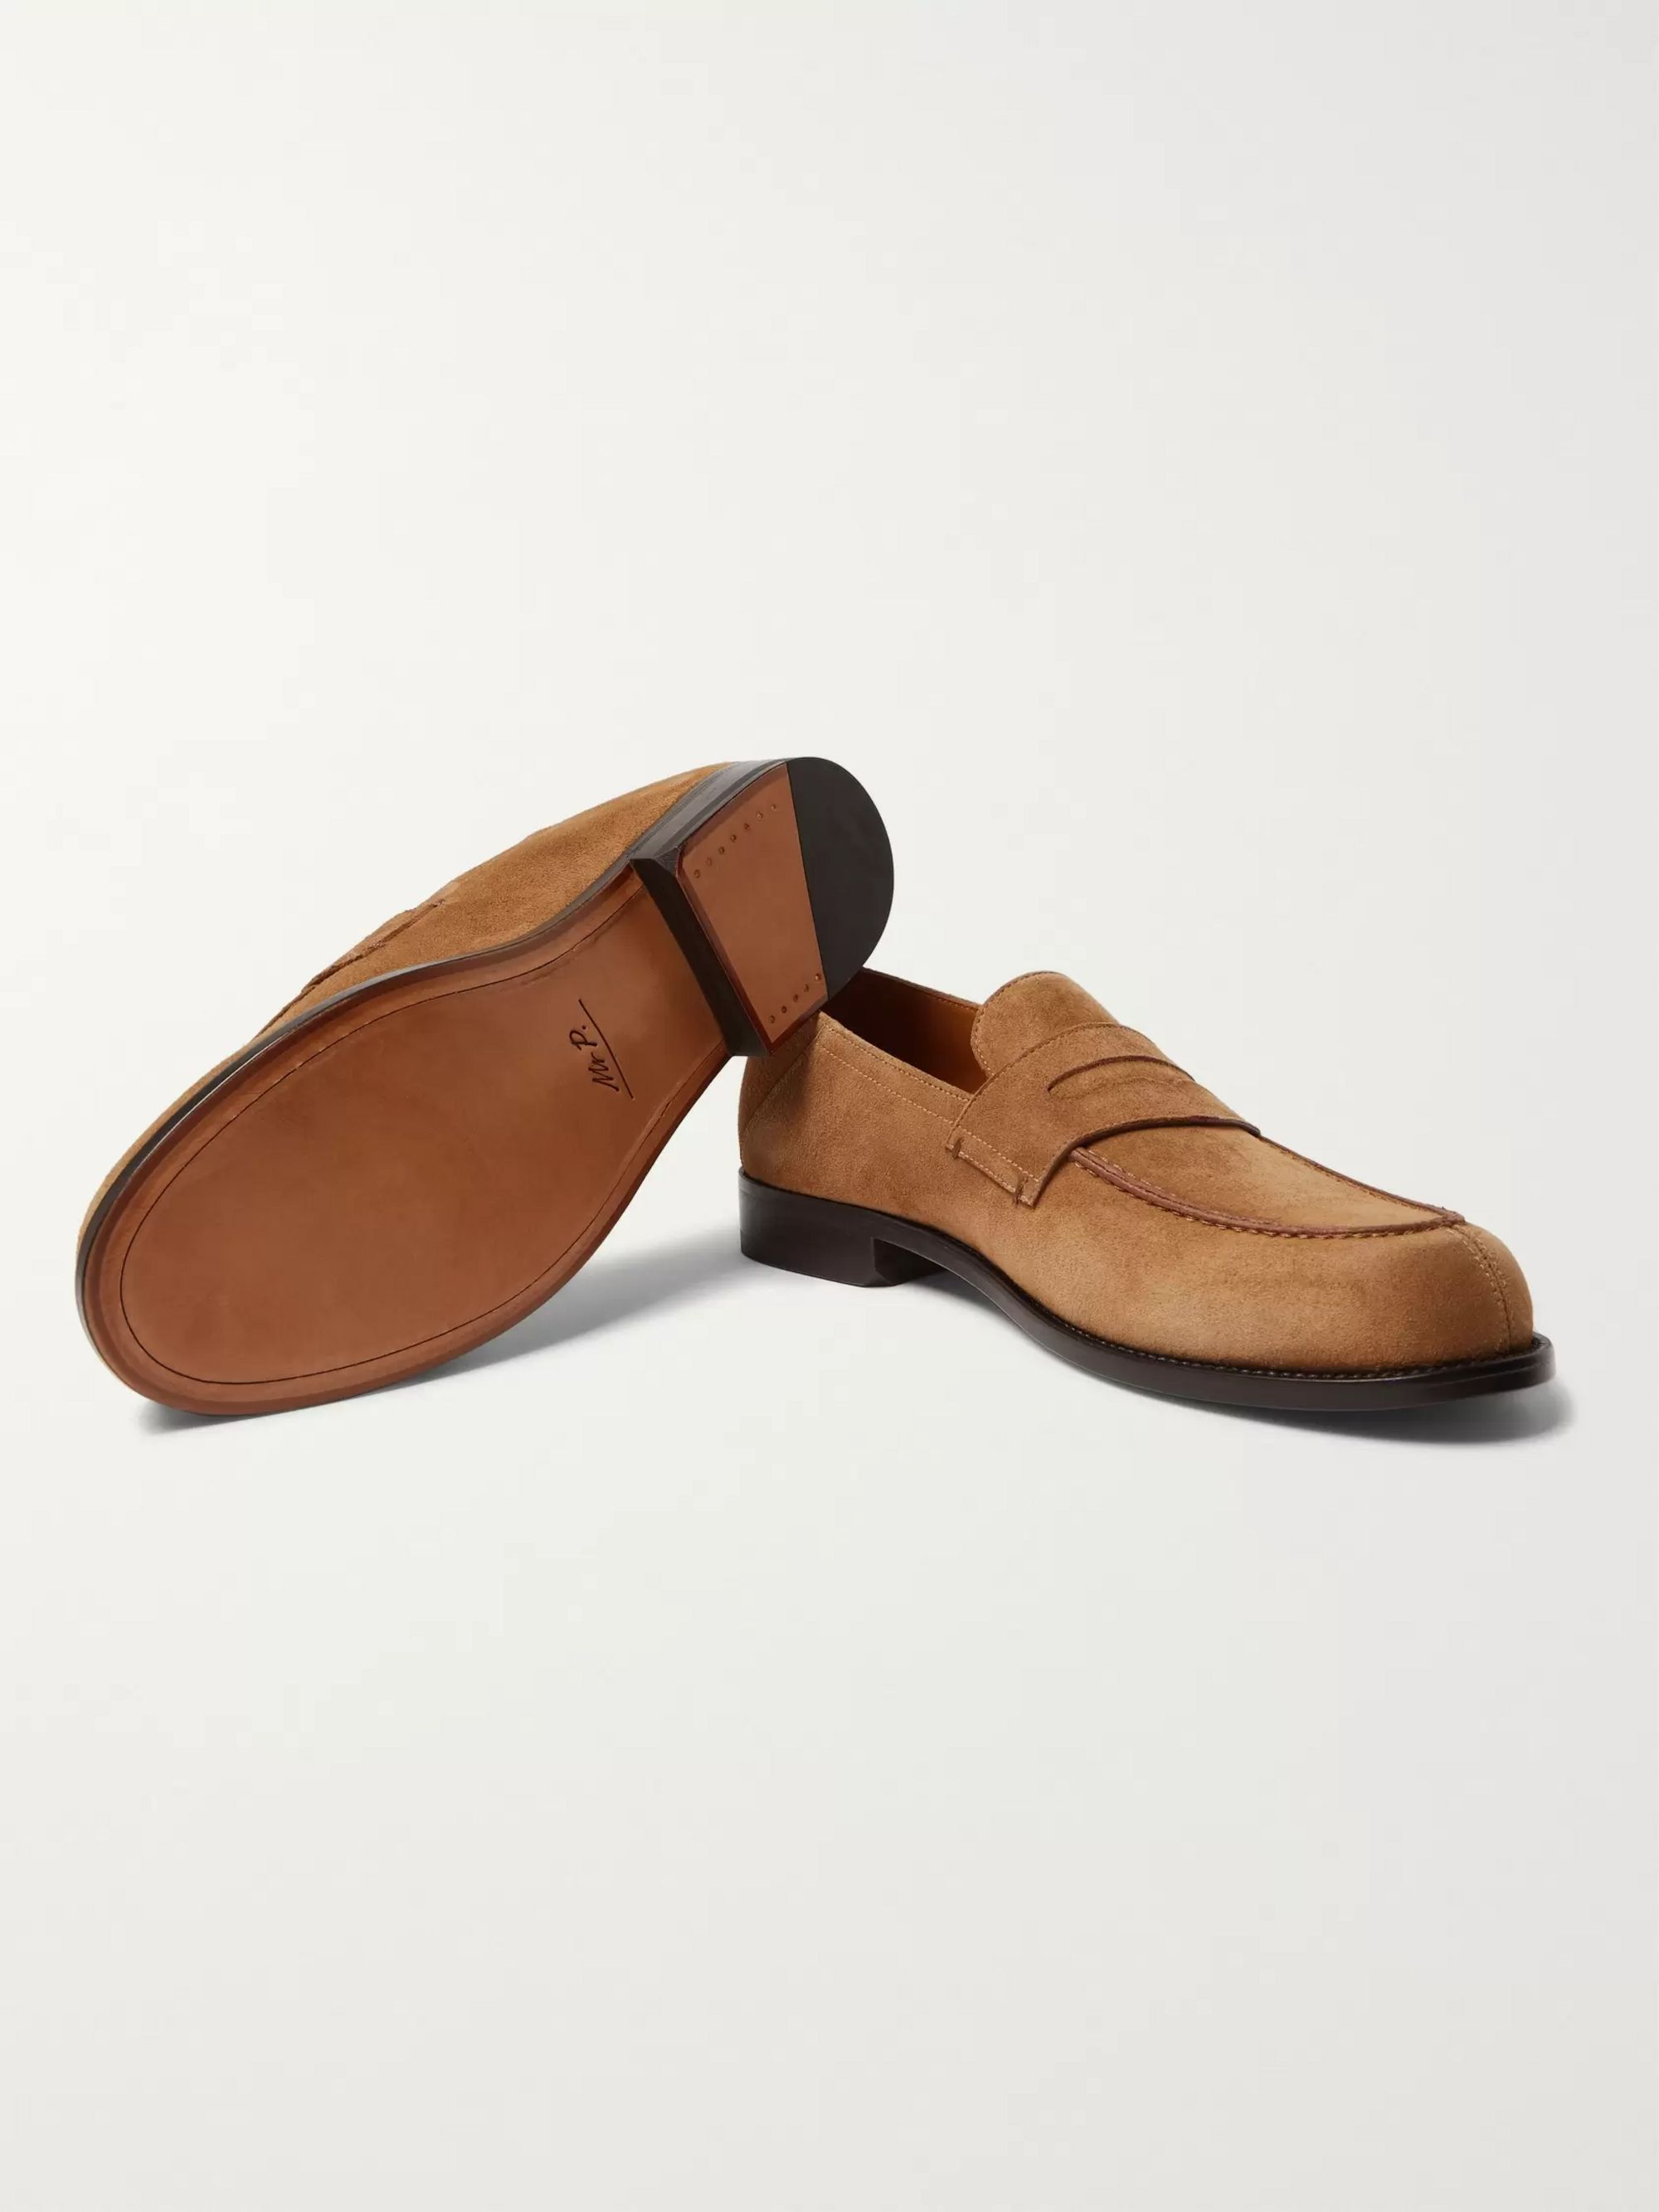 Mr P. Dennis Collapsible-Heel Suede Loafers